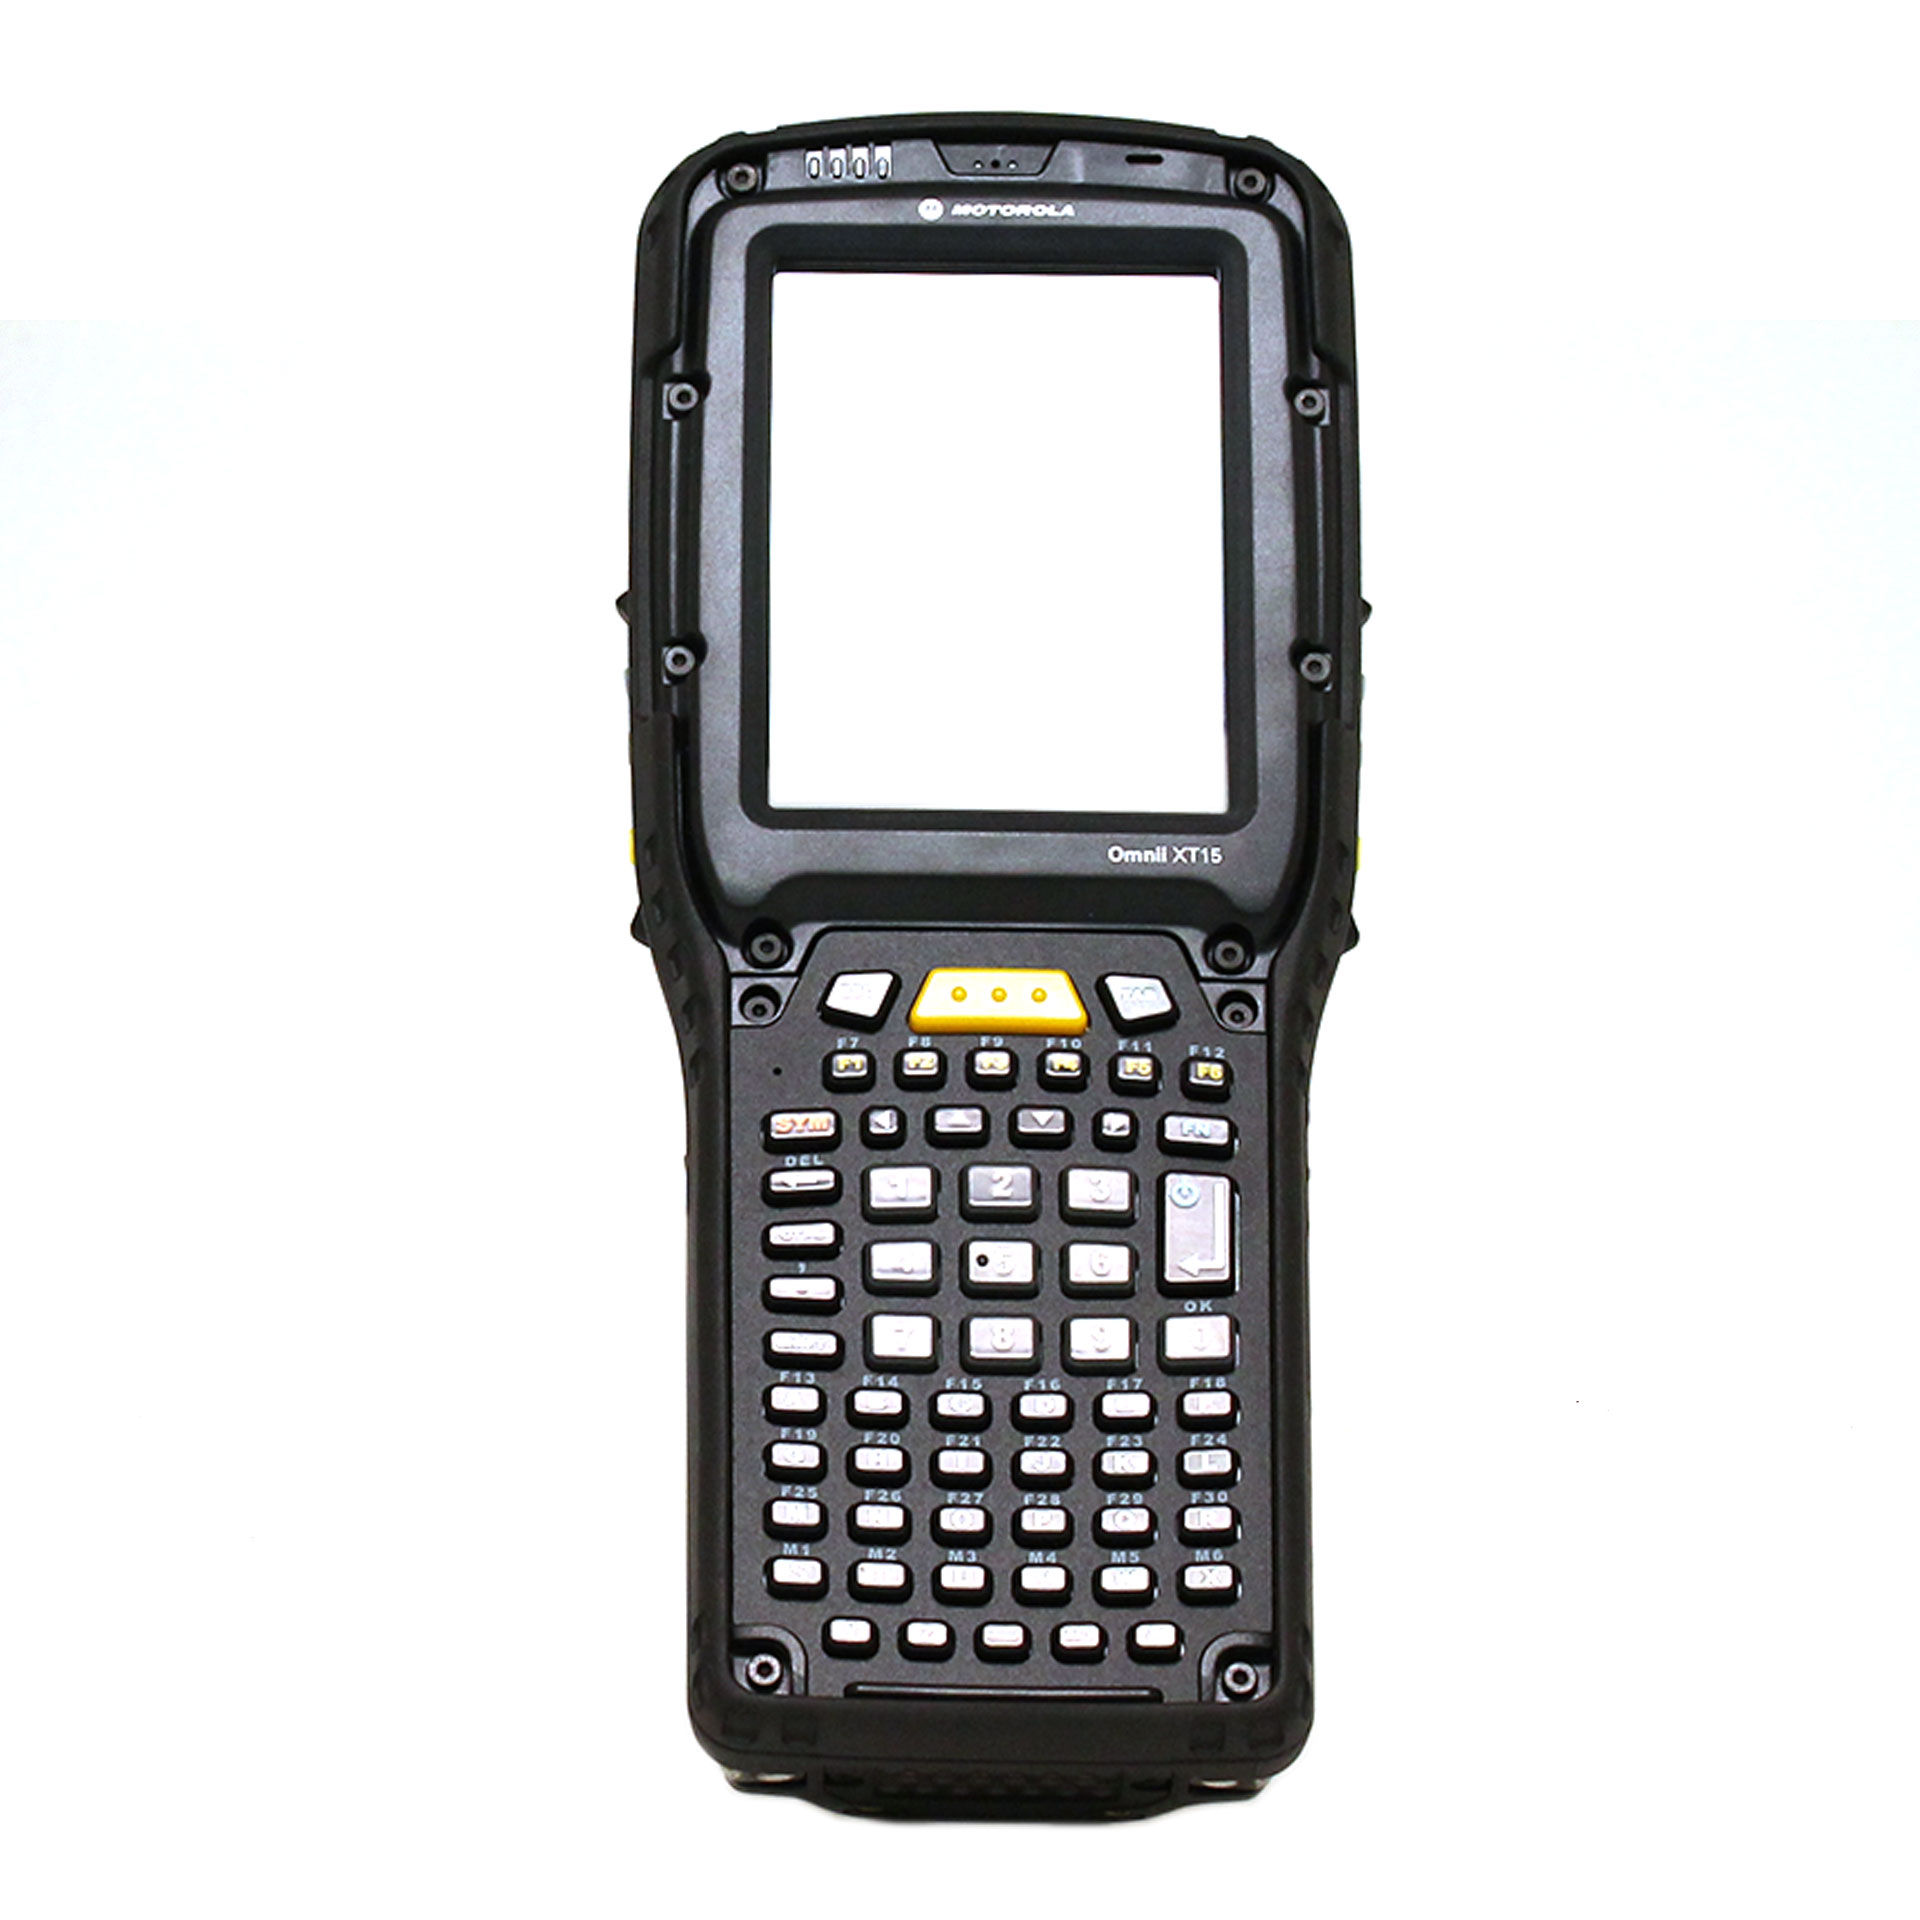 Motorola(Zebra) Omnii XT15 data collection terminal 7545MBW